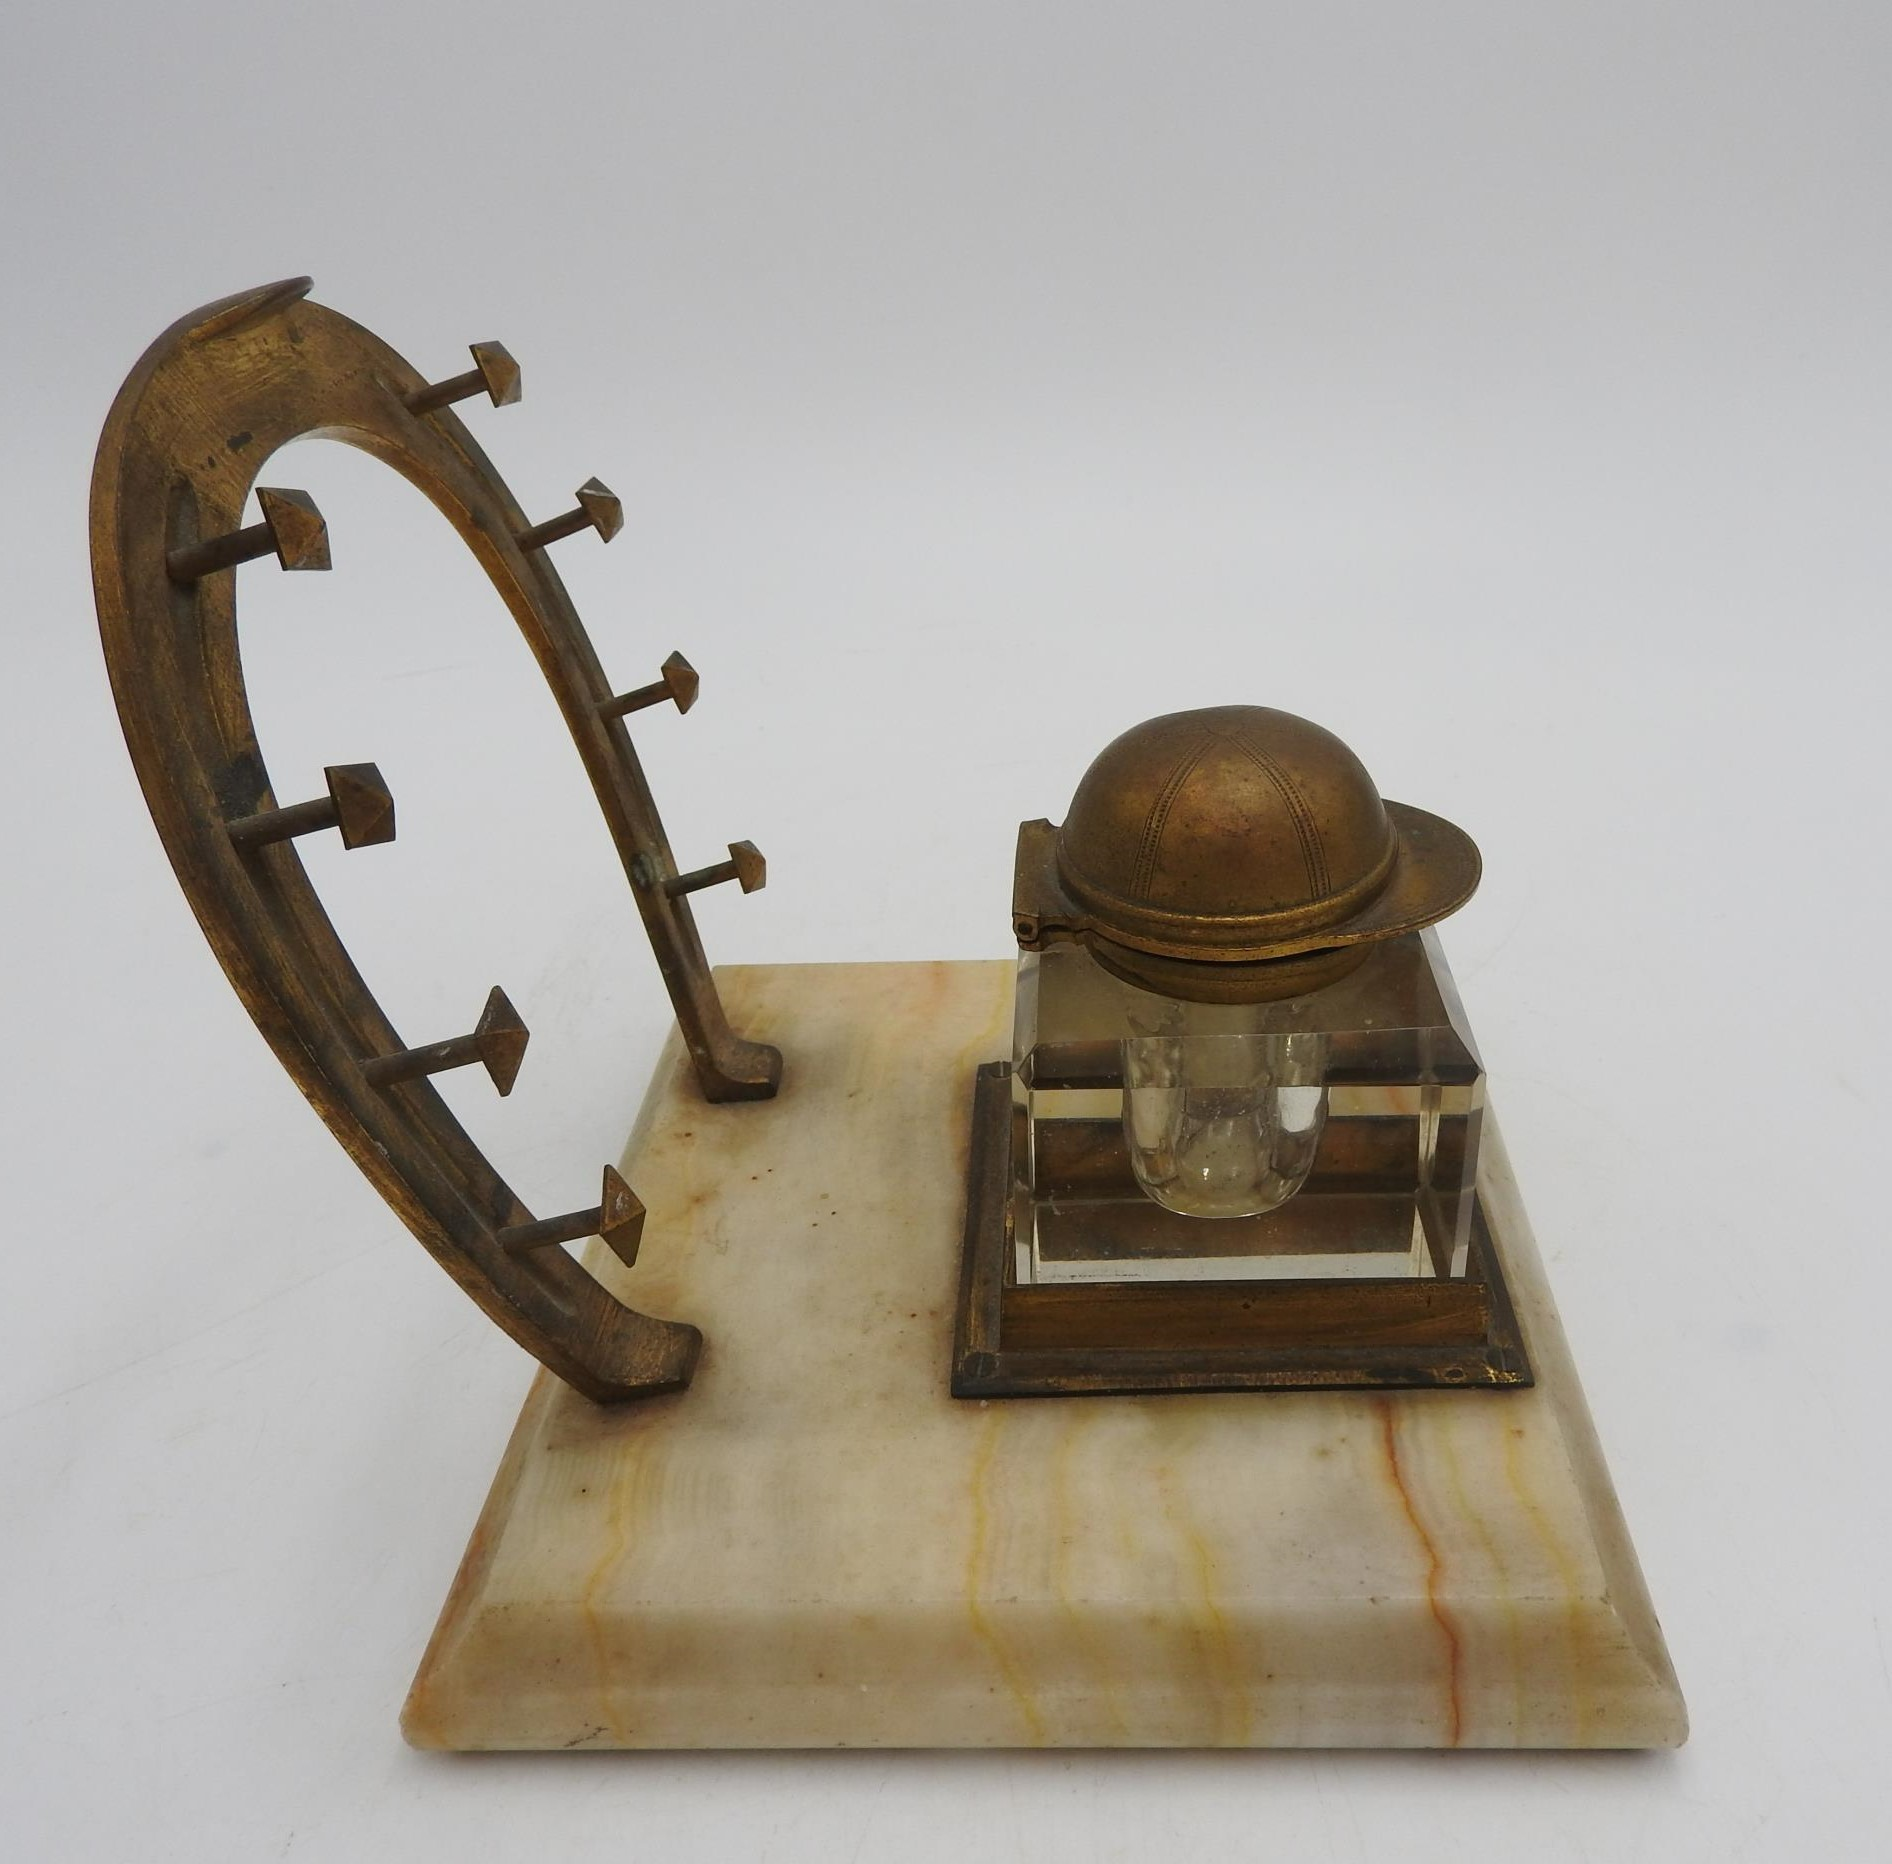 A NOVELTY JOCKEY'S INKWELL STAND, comprising of a horseshoe shaped pen rack and an inkwell with a - Image 4 of 4